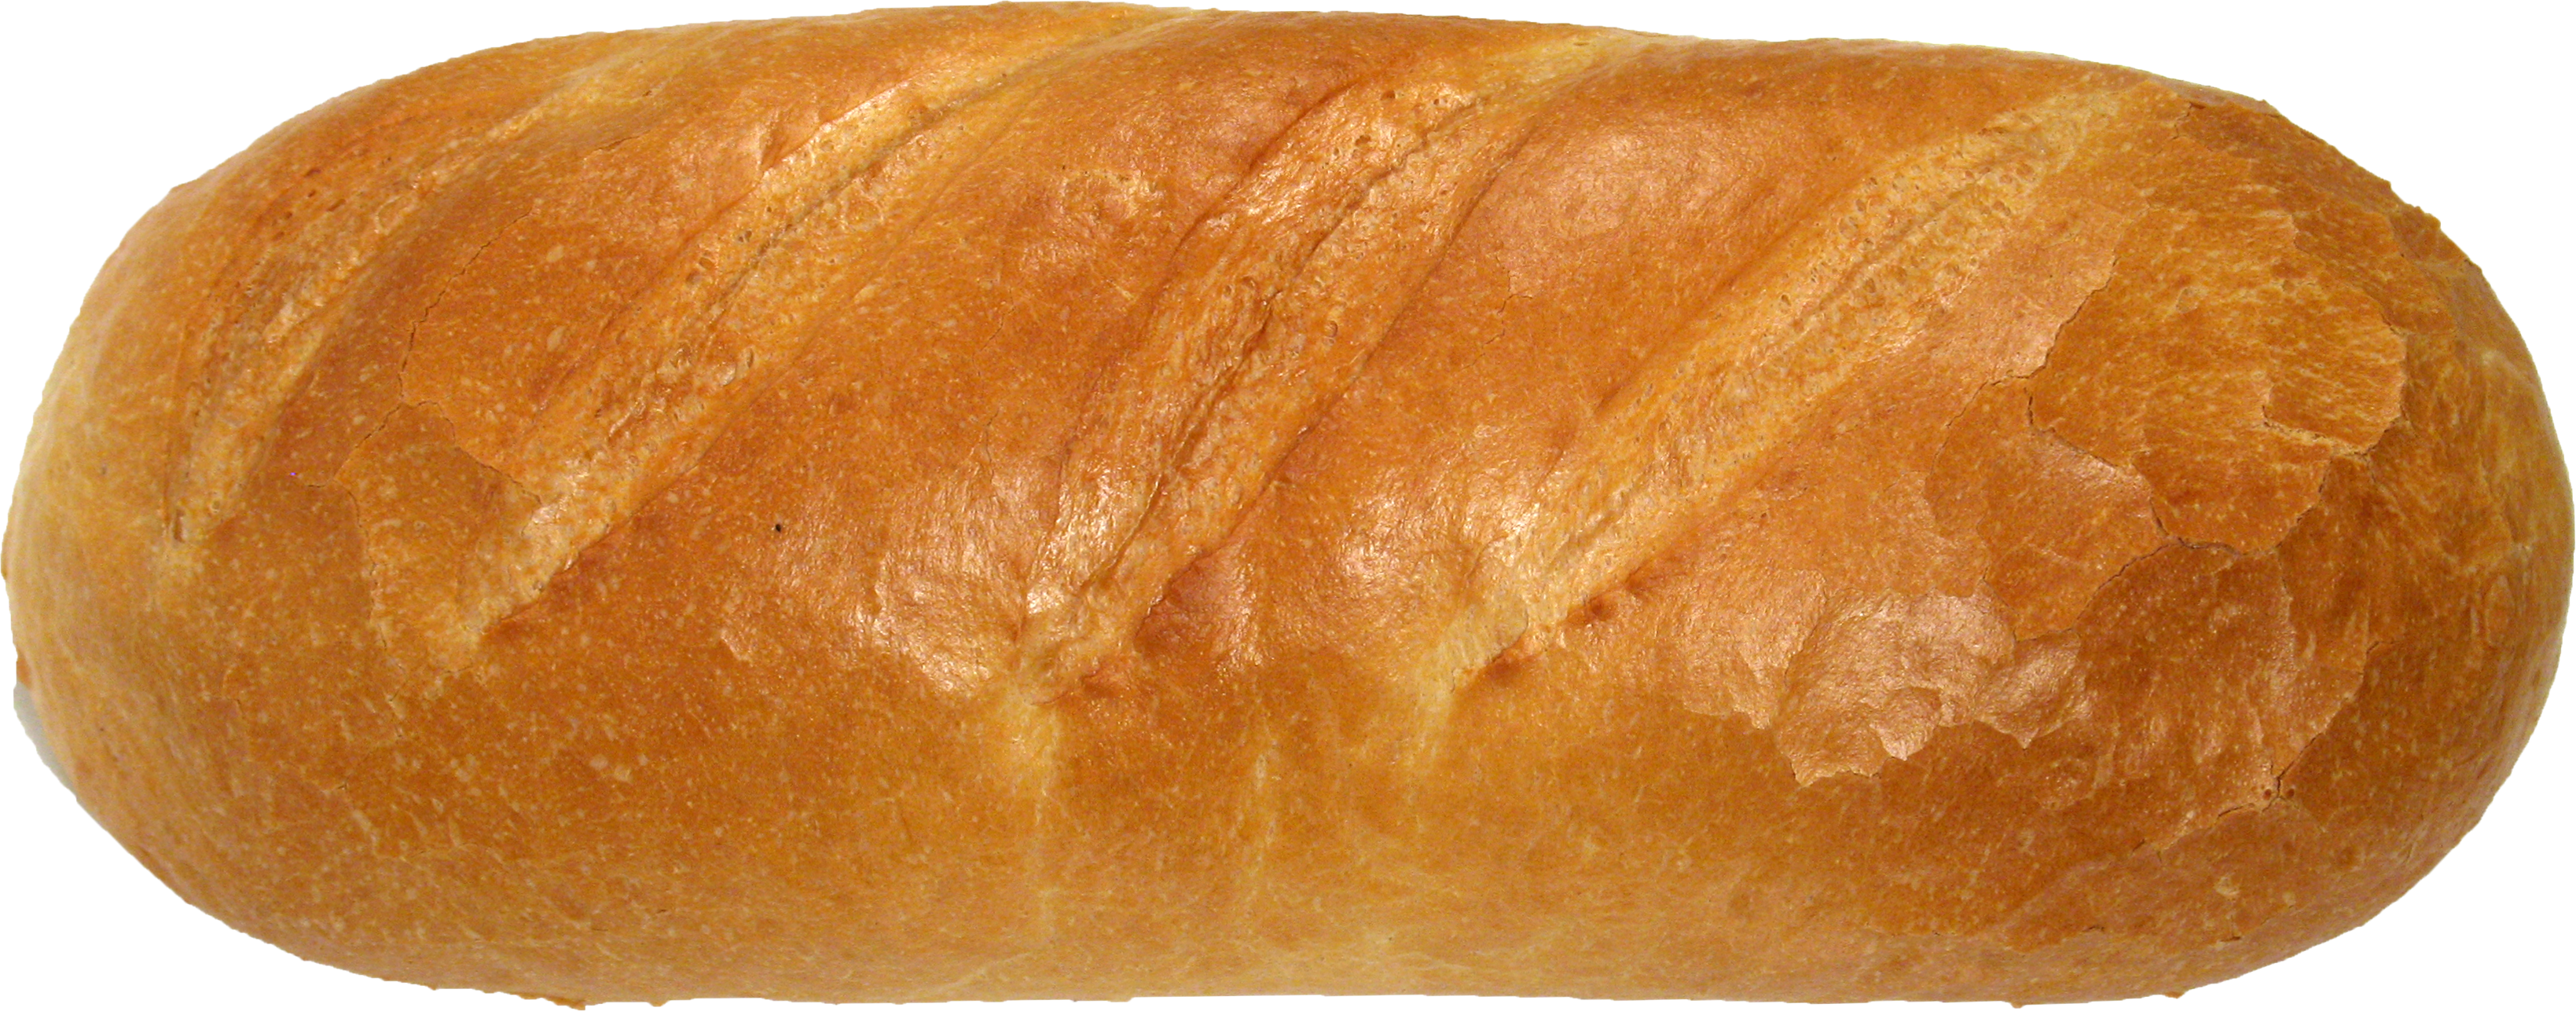 Clipart bread yeast bread. Png image